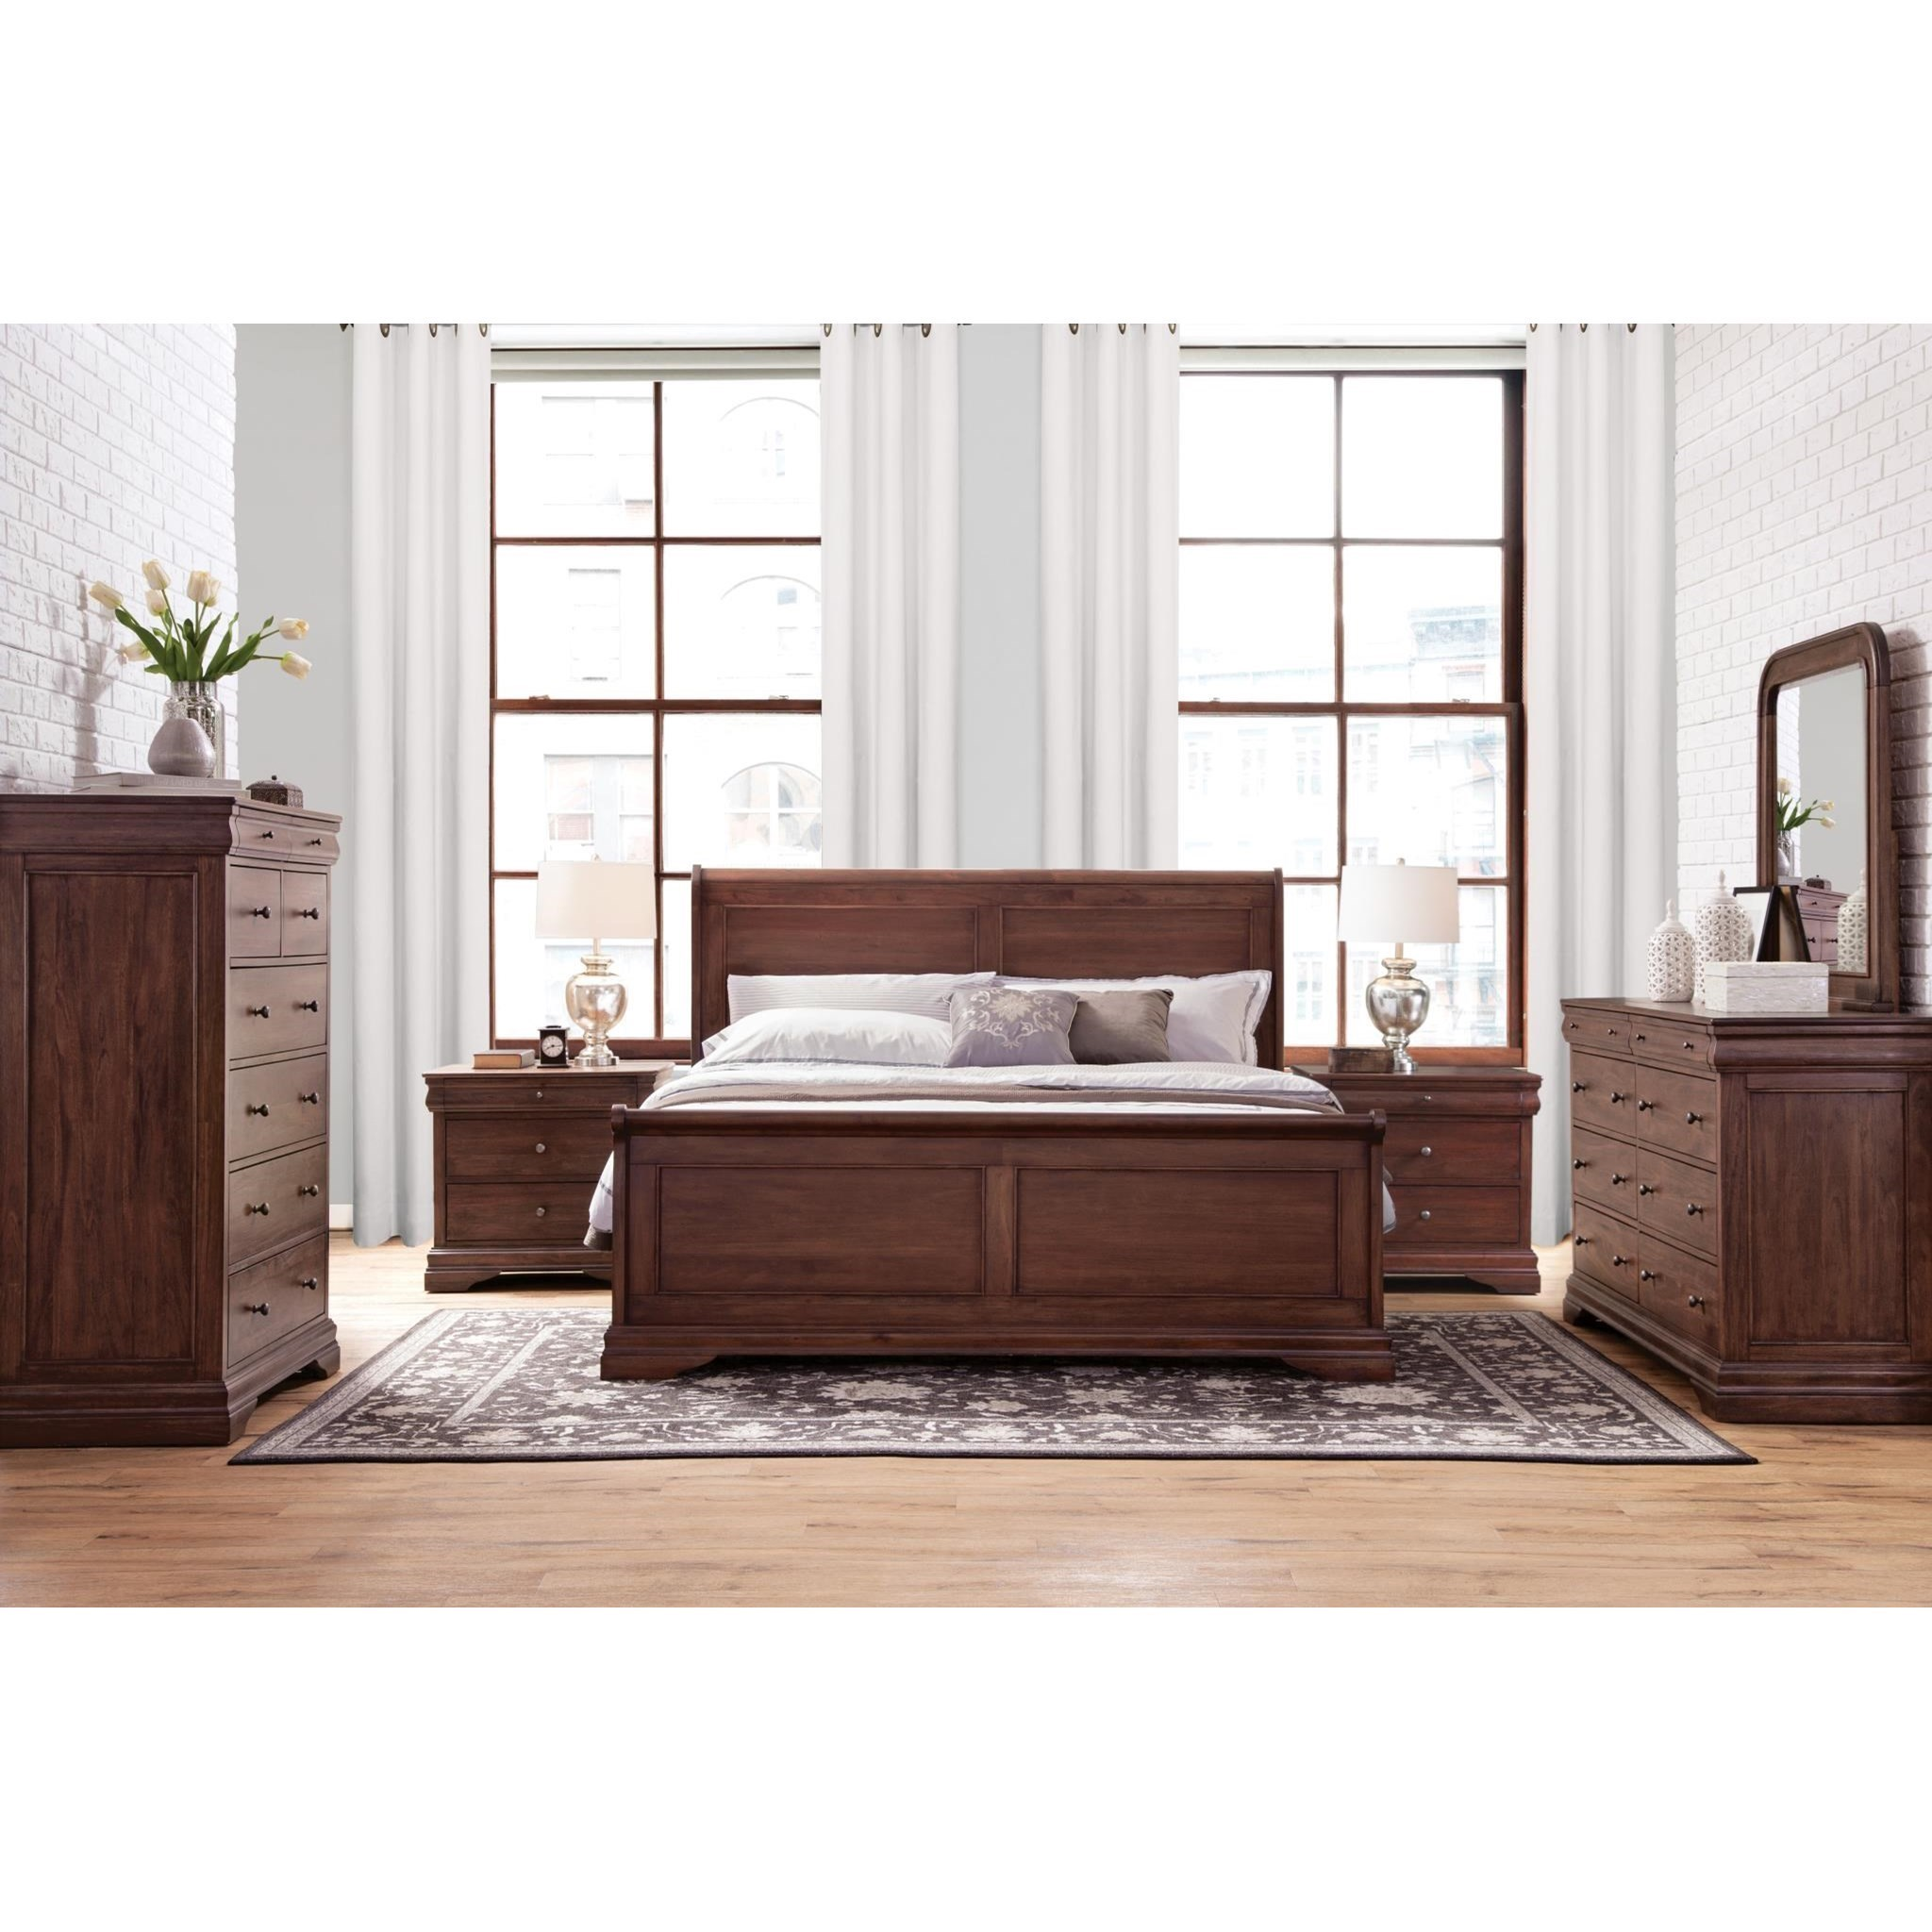 Delicieux Napa Furniture Designs French Classic Queen Bedroom Group